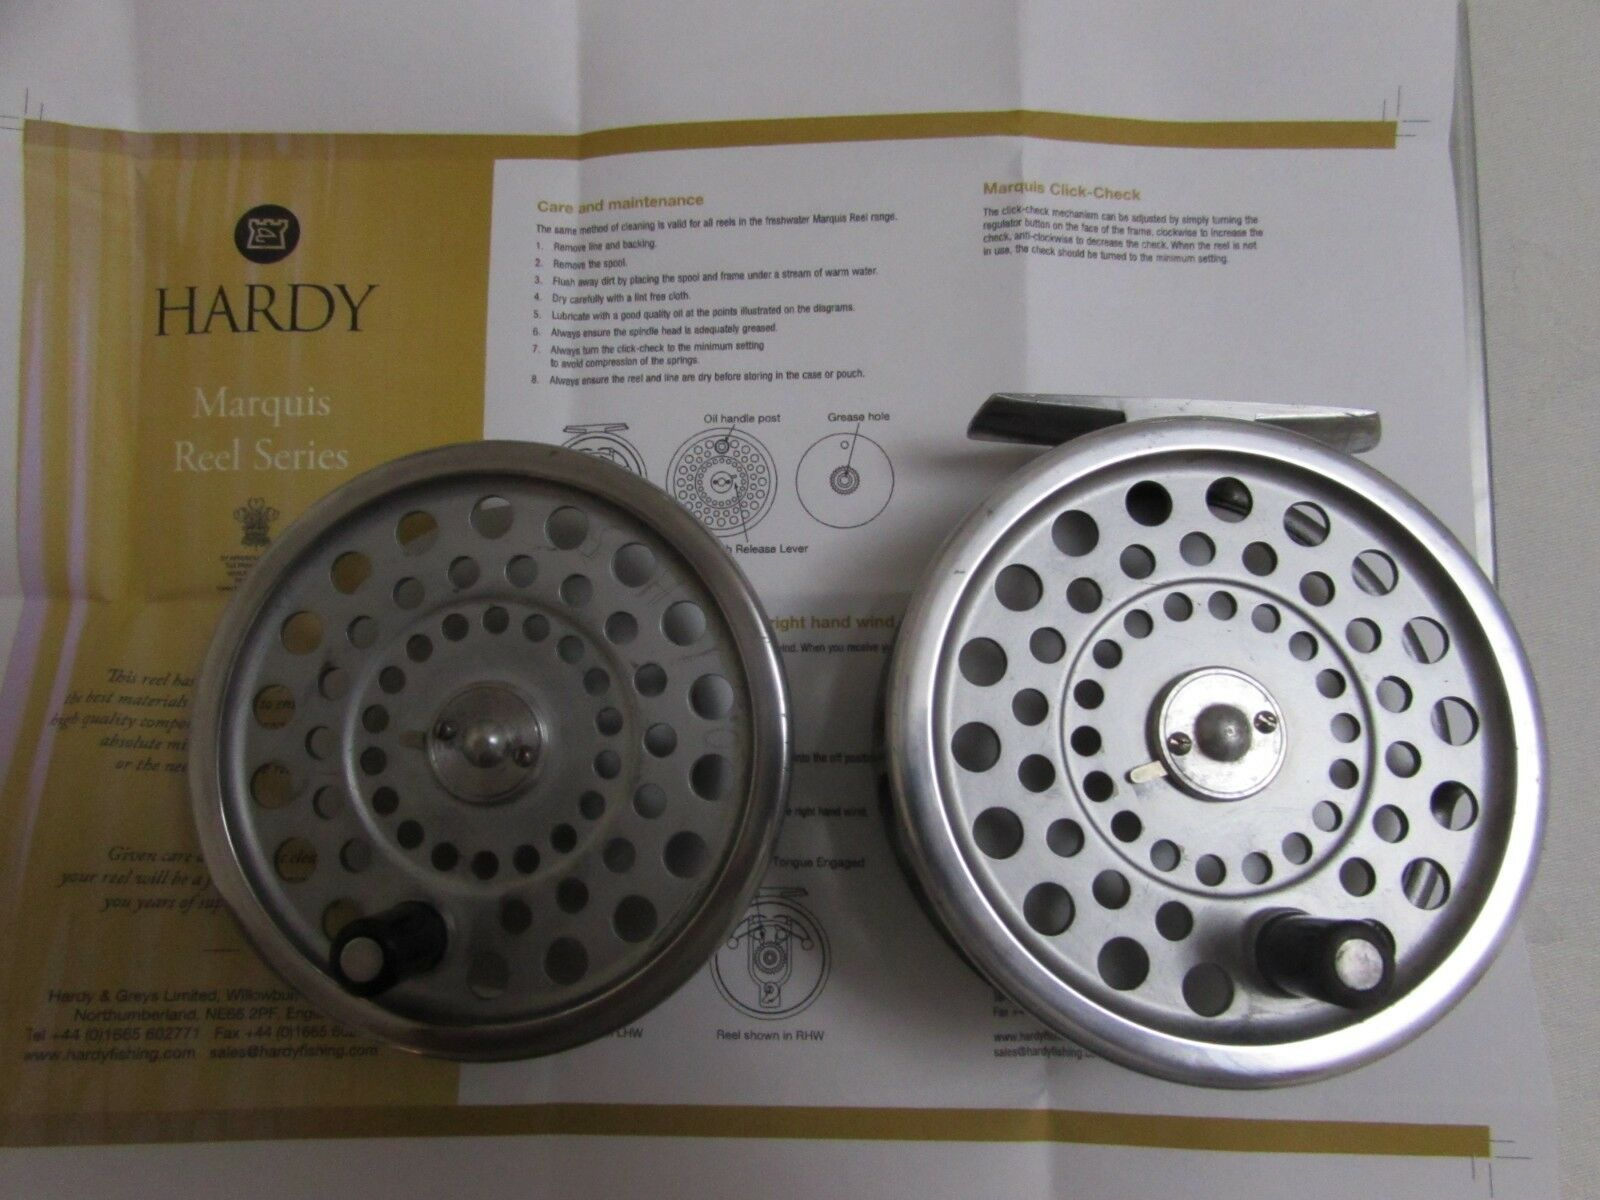 Very good vintage hardy marquis no 7 trout fly fishing reel 3.5  + spool .,.,